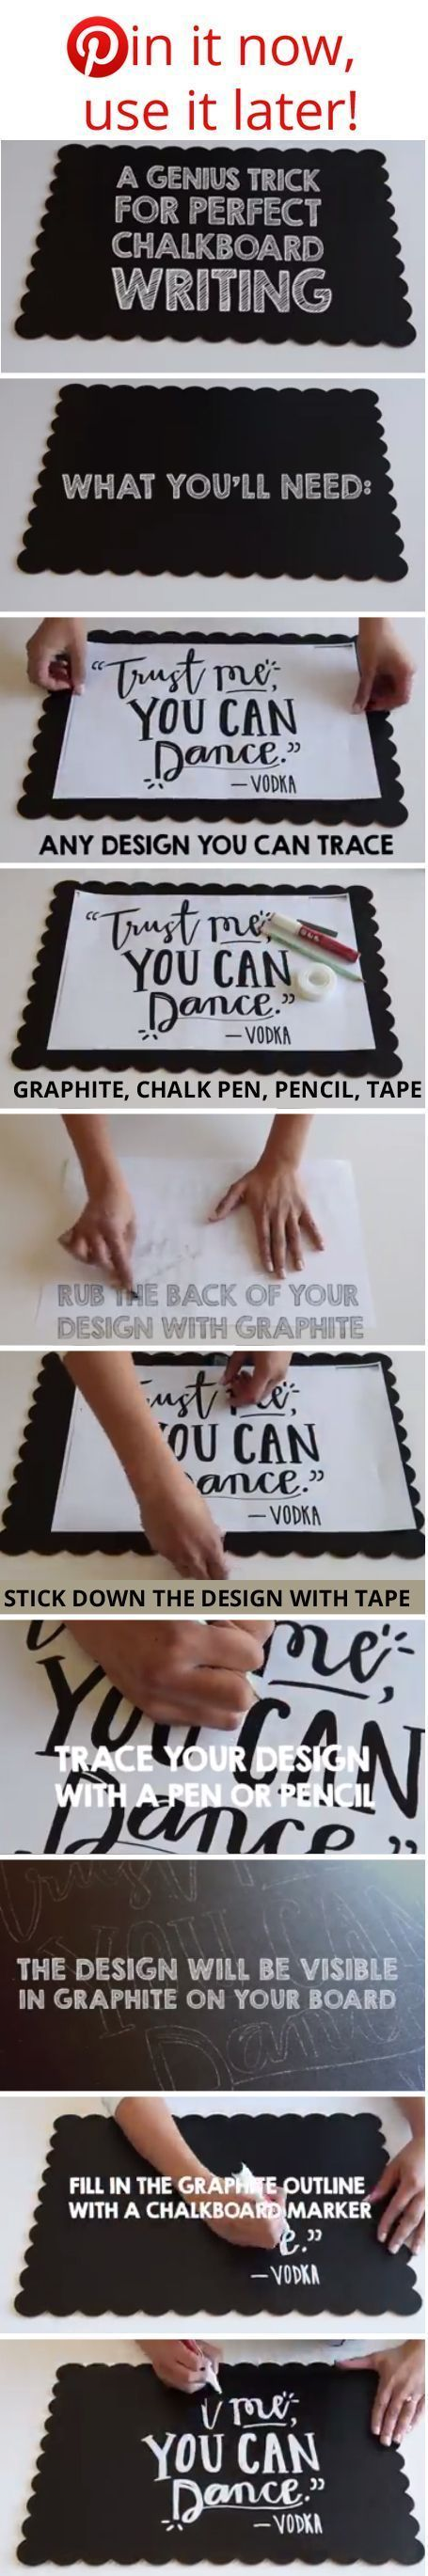 How To Write Nicely On A Blackboard / Chalkboard, fab for making wedding signs – Click through to see the video (Chalkboard Writing How To Video!) Find chalkboards and chalk markers at http://www.afloral.com/ (Best Wedding Fonts)